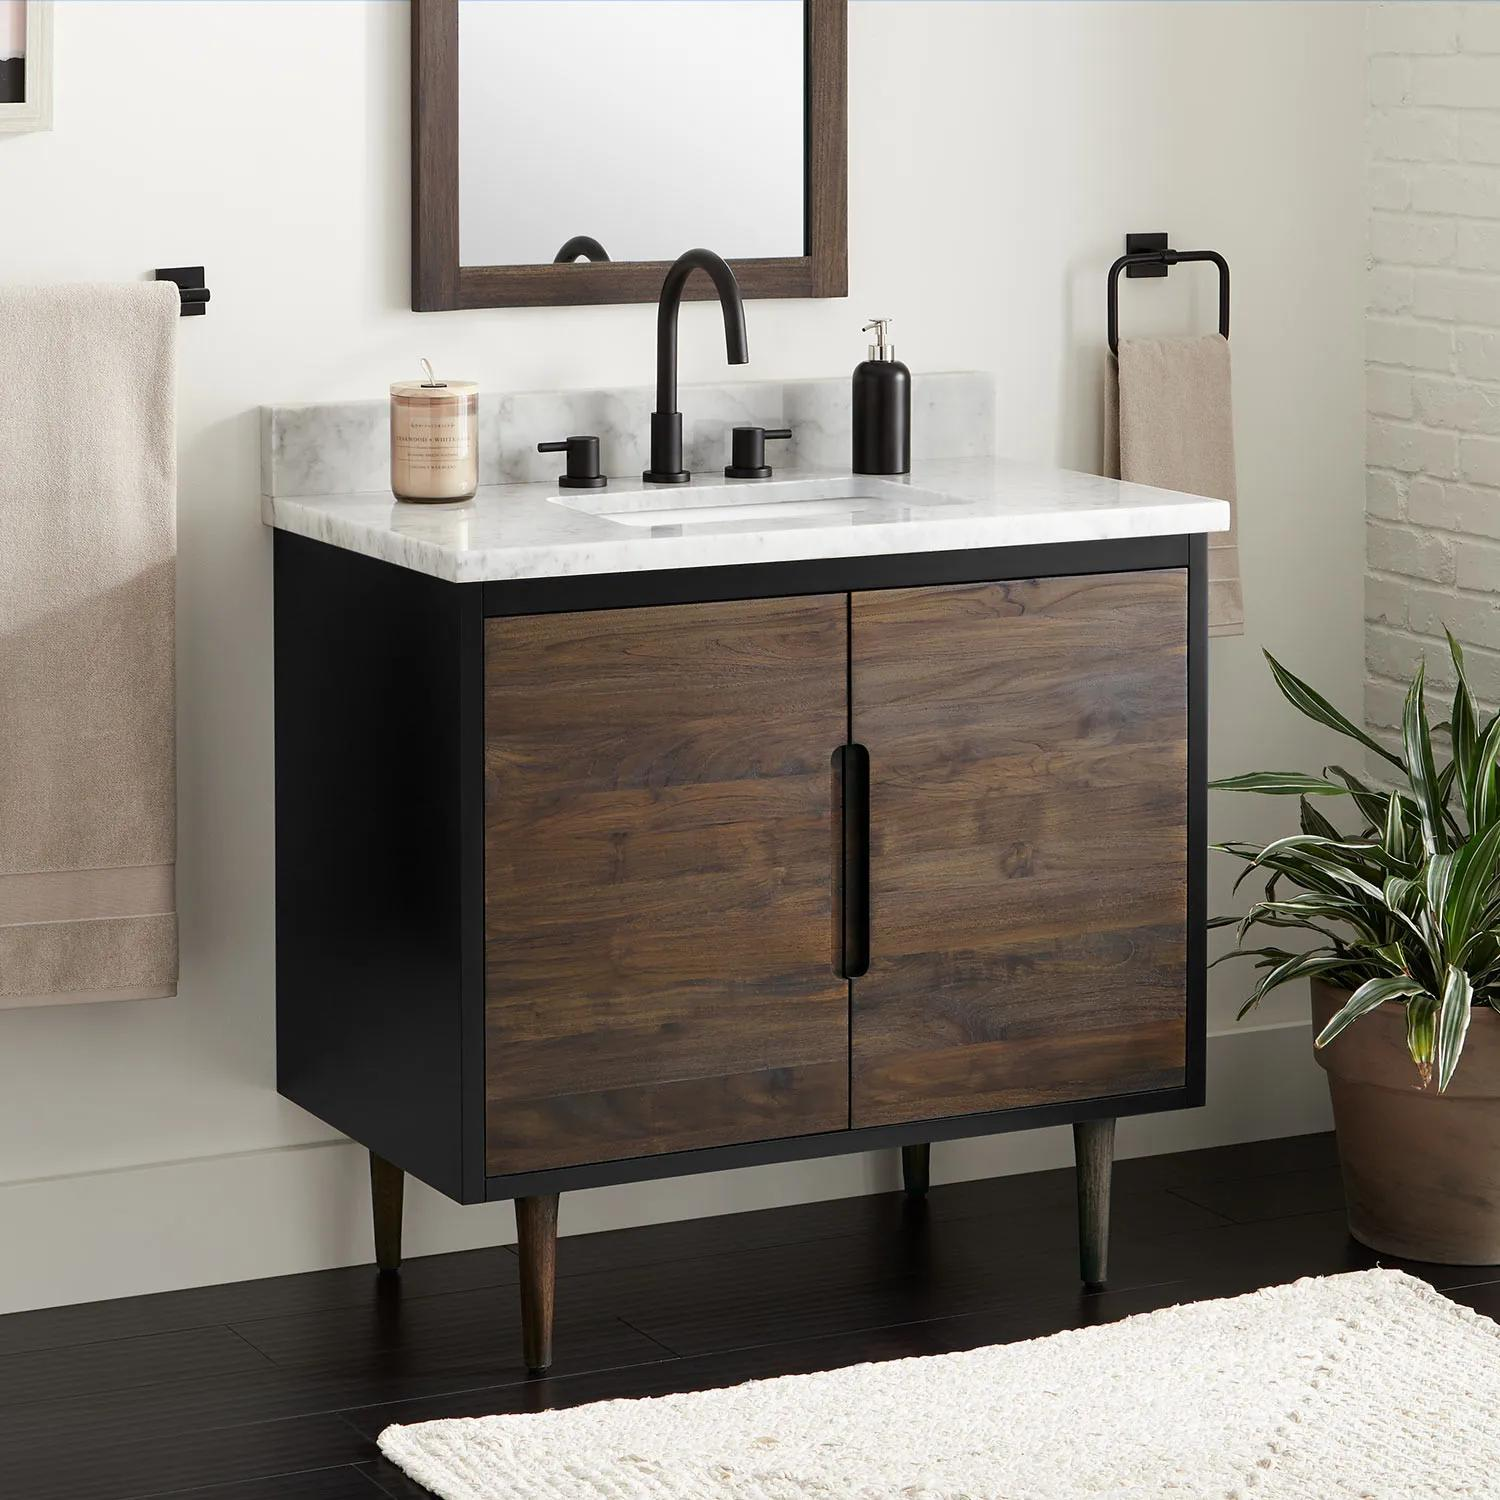 36 Bivins Teak Bathroom Vanity For Rectangular Undermount Sink Walnut Black Bathroom